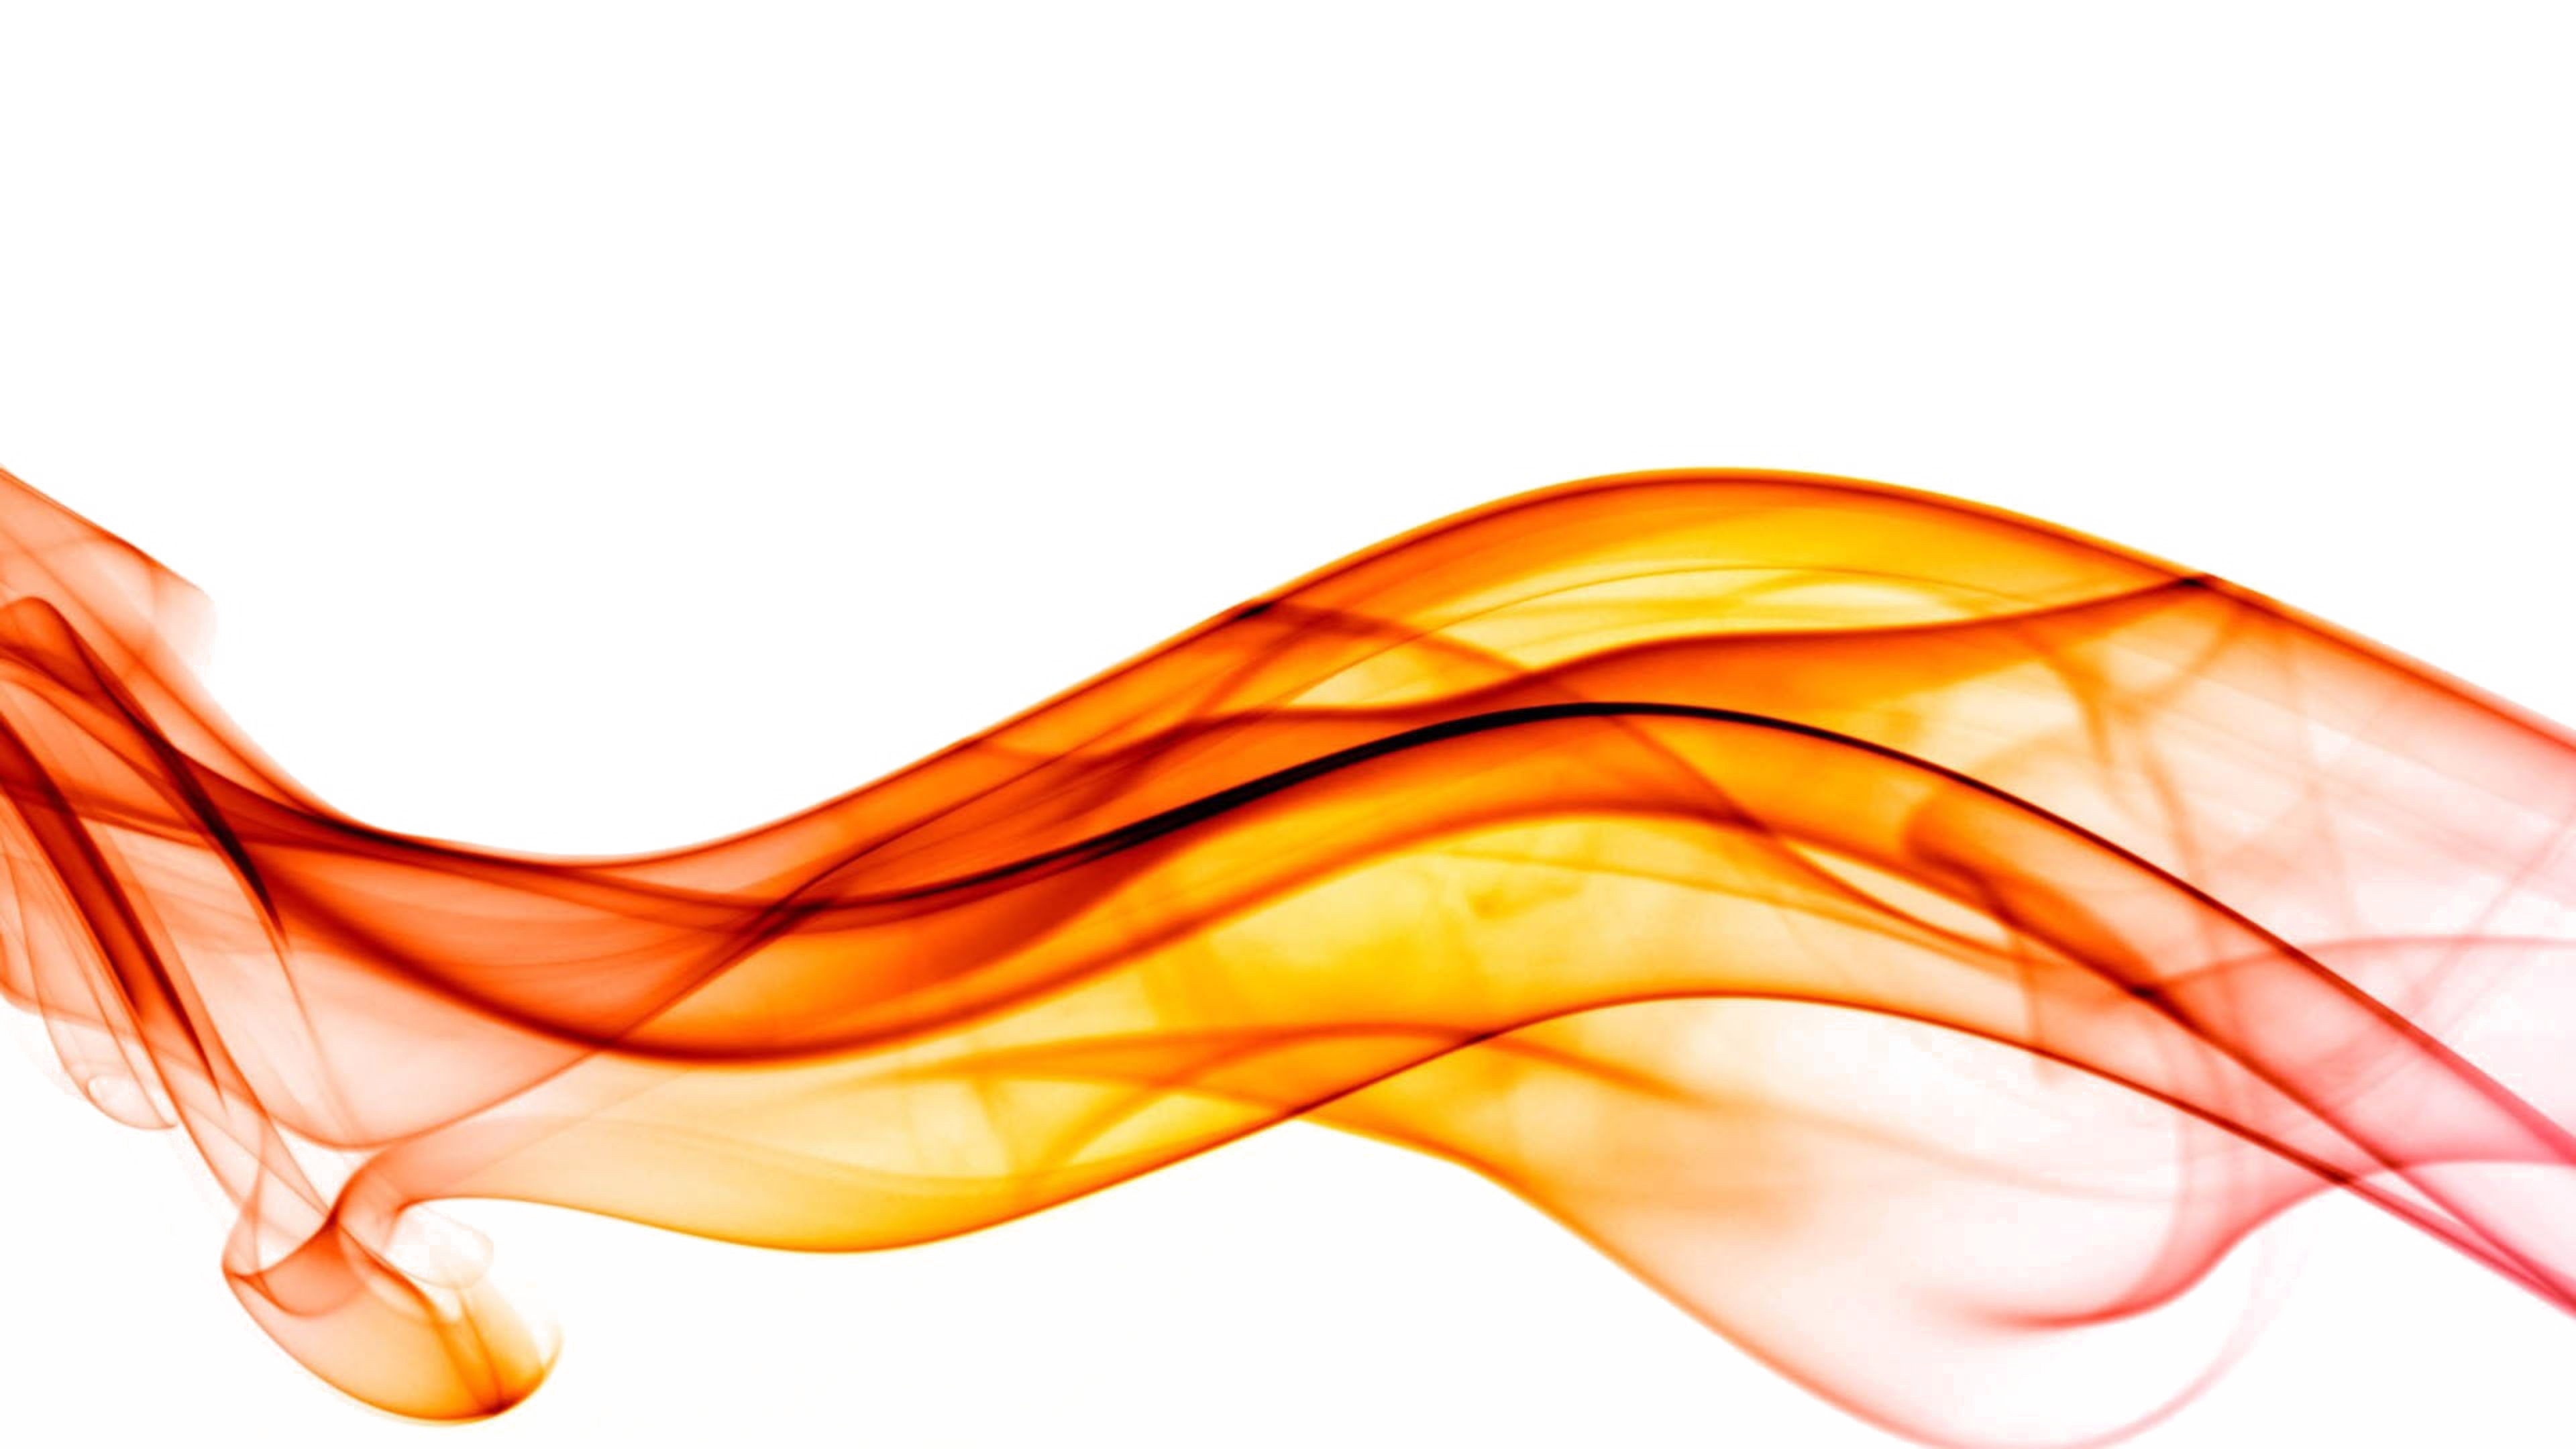 Abstract wave png. Transparent images mart